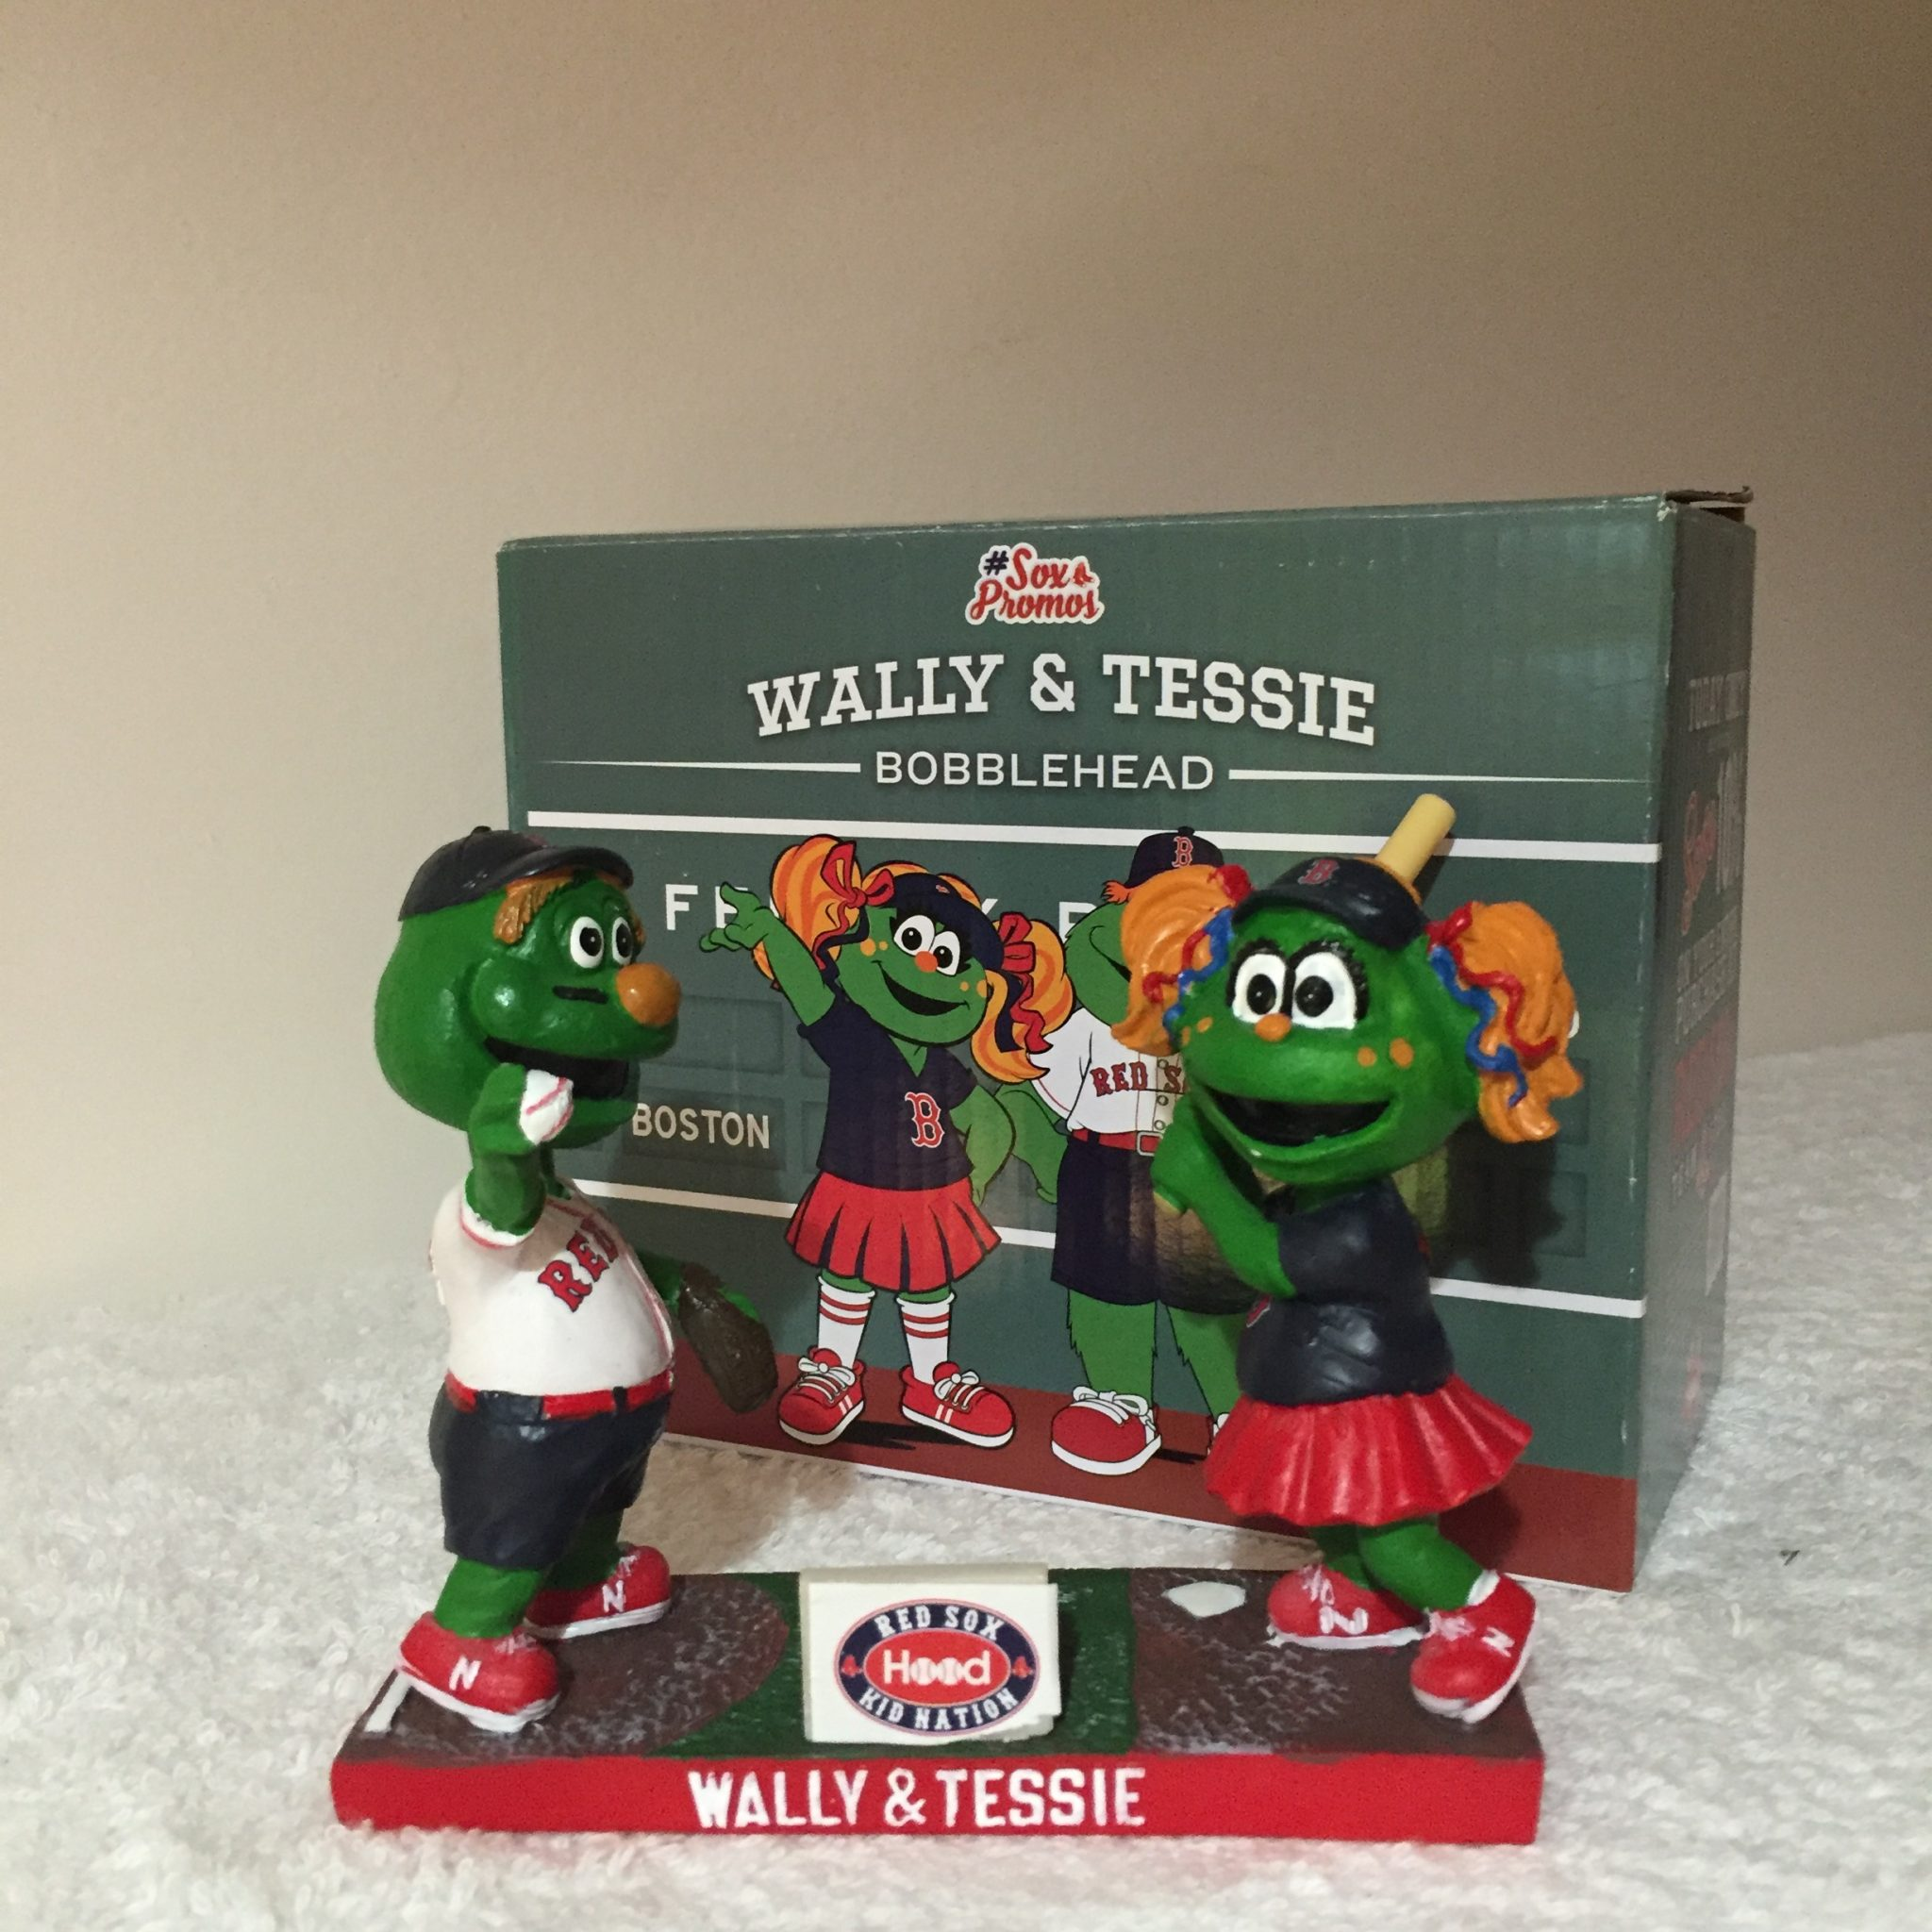 Wally & Tessie